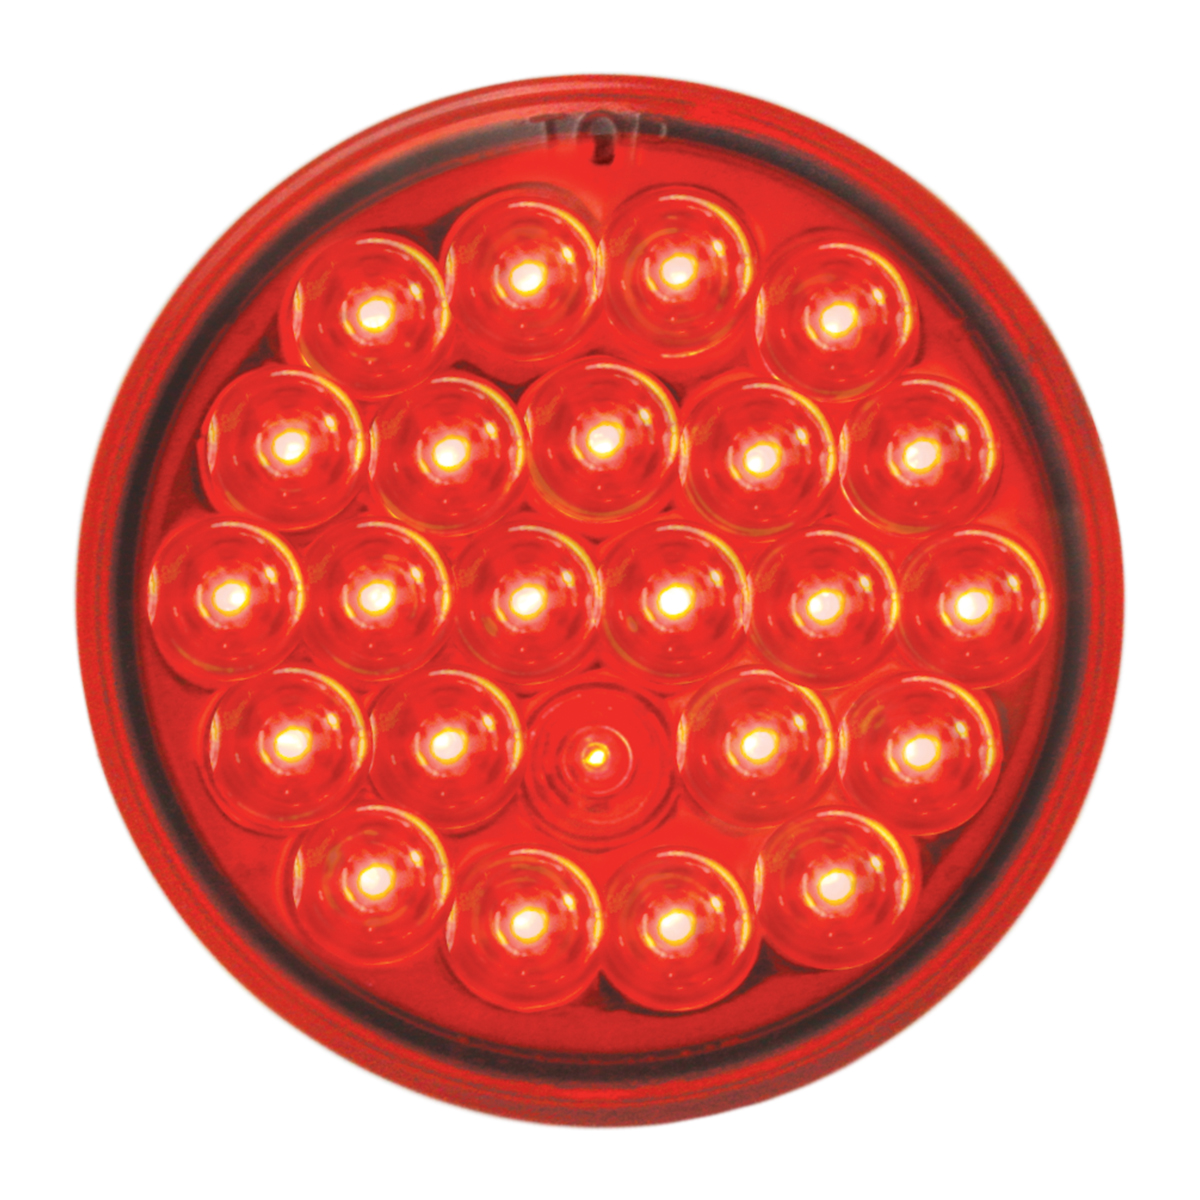 "#78273 - 4"" Round Pearl LED Flat Red/Red Light"